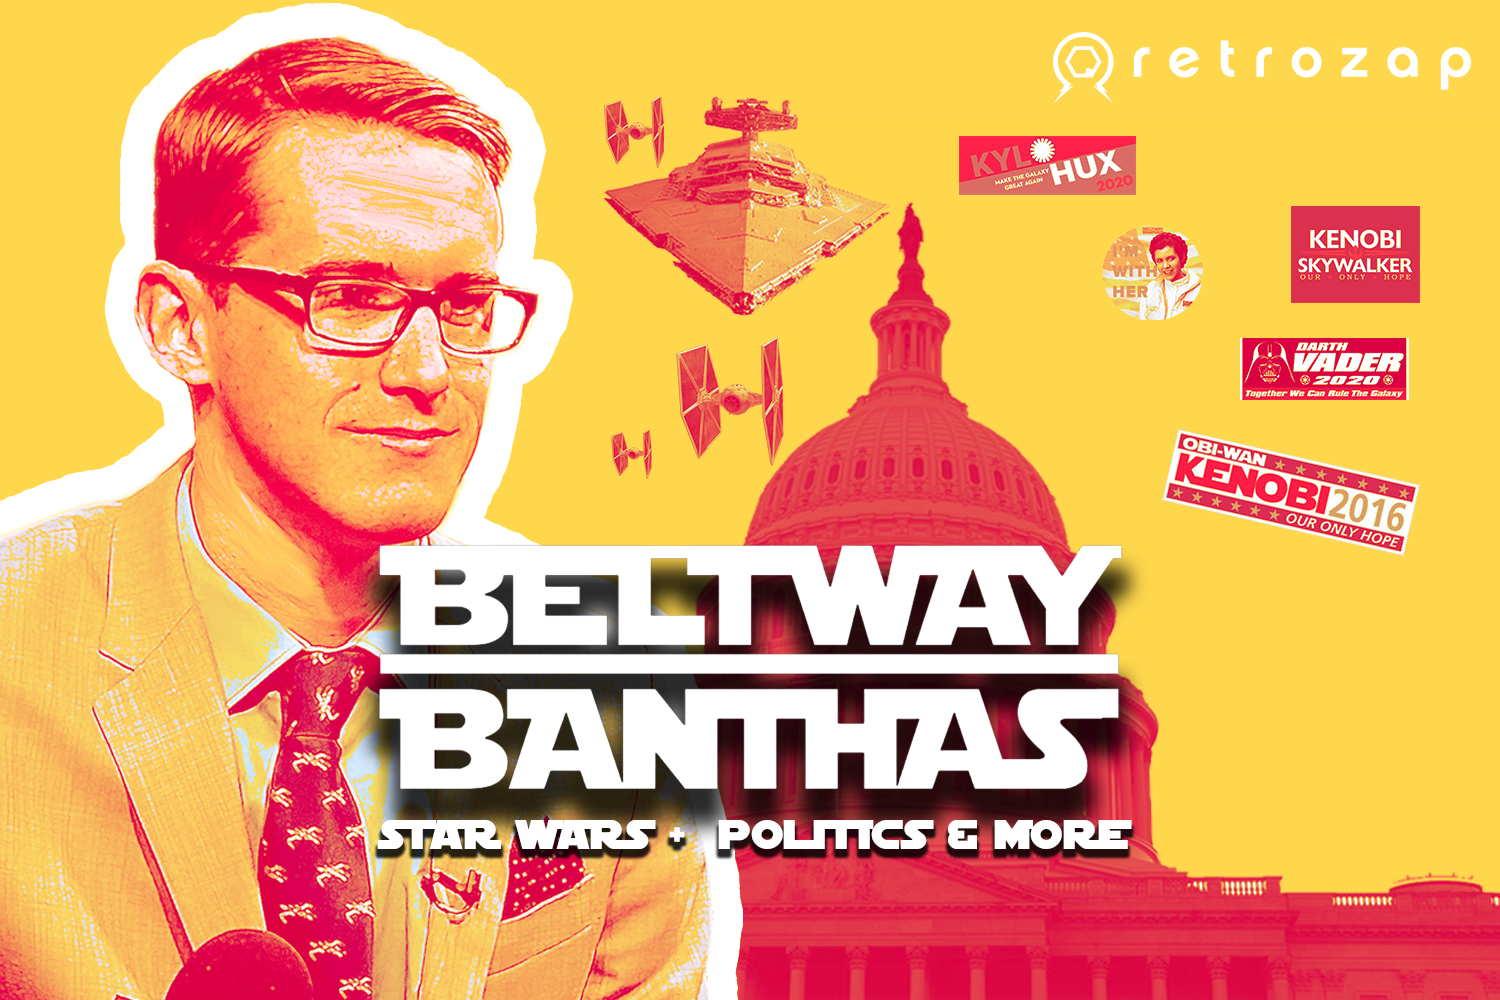 Beltway Banthas